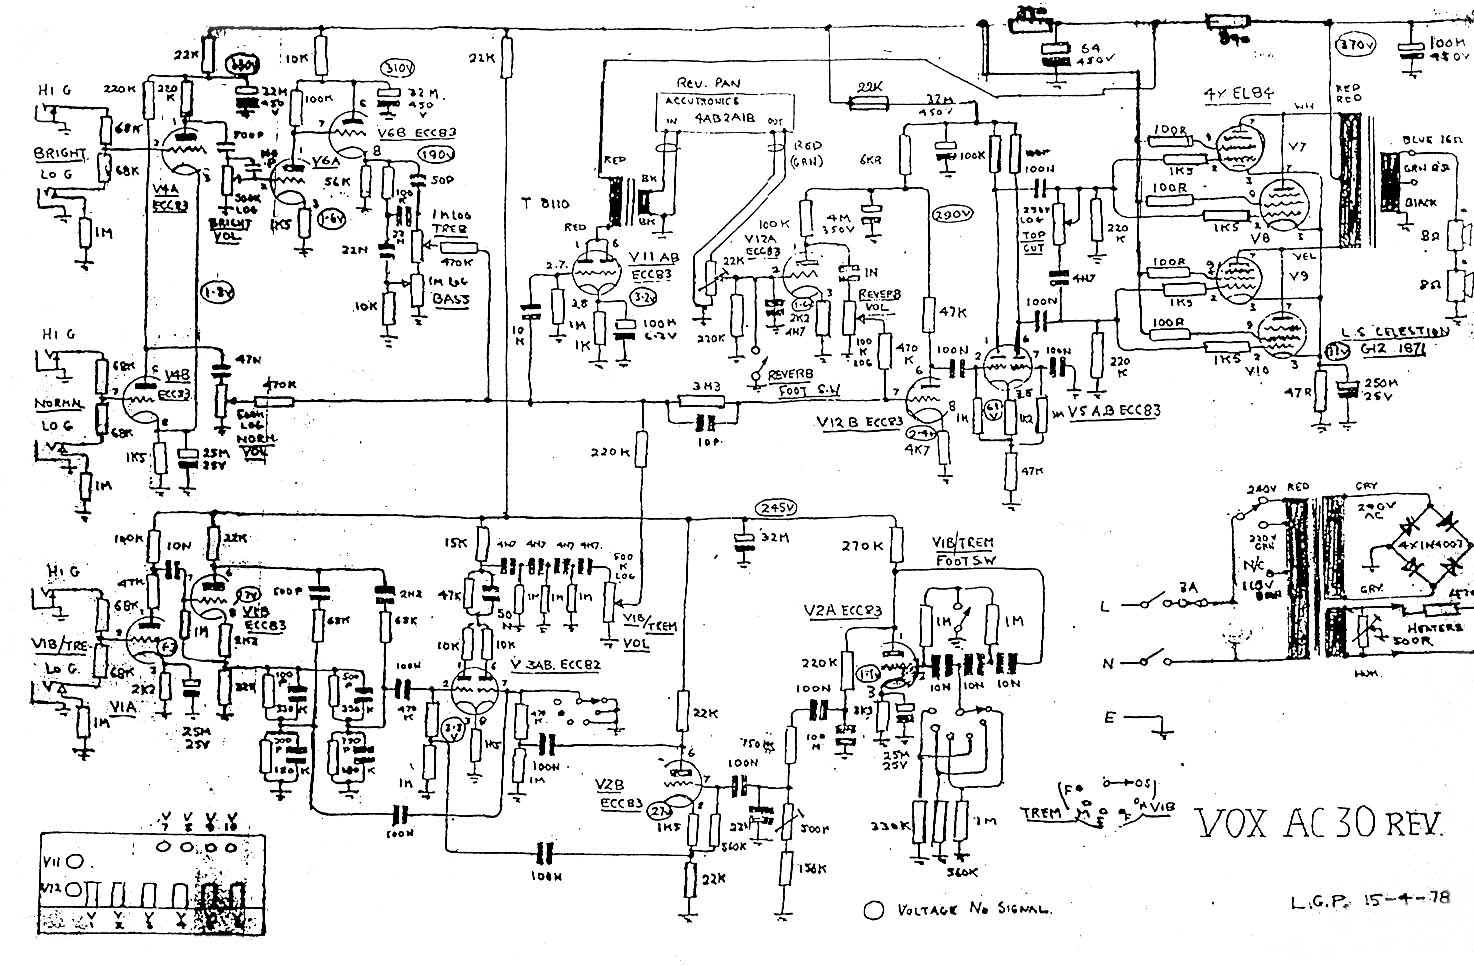 Swell Vox Vintage Circuit Diagrams Wiring 101 Vieworaxxcnl